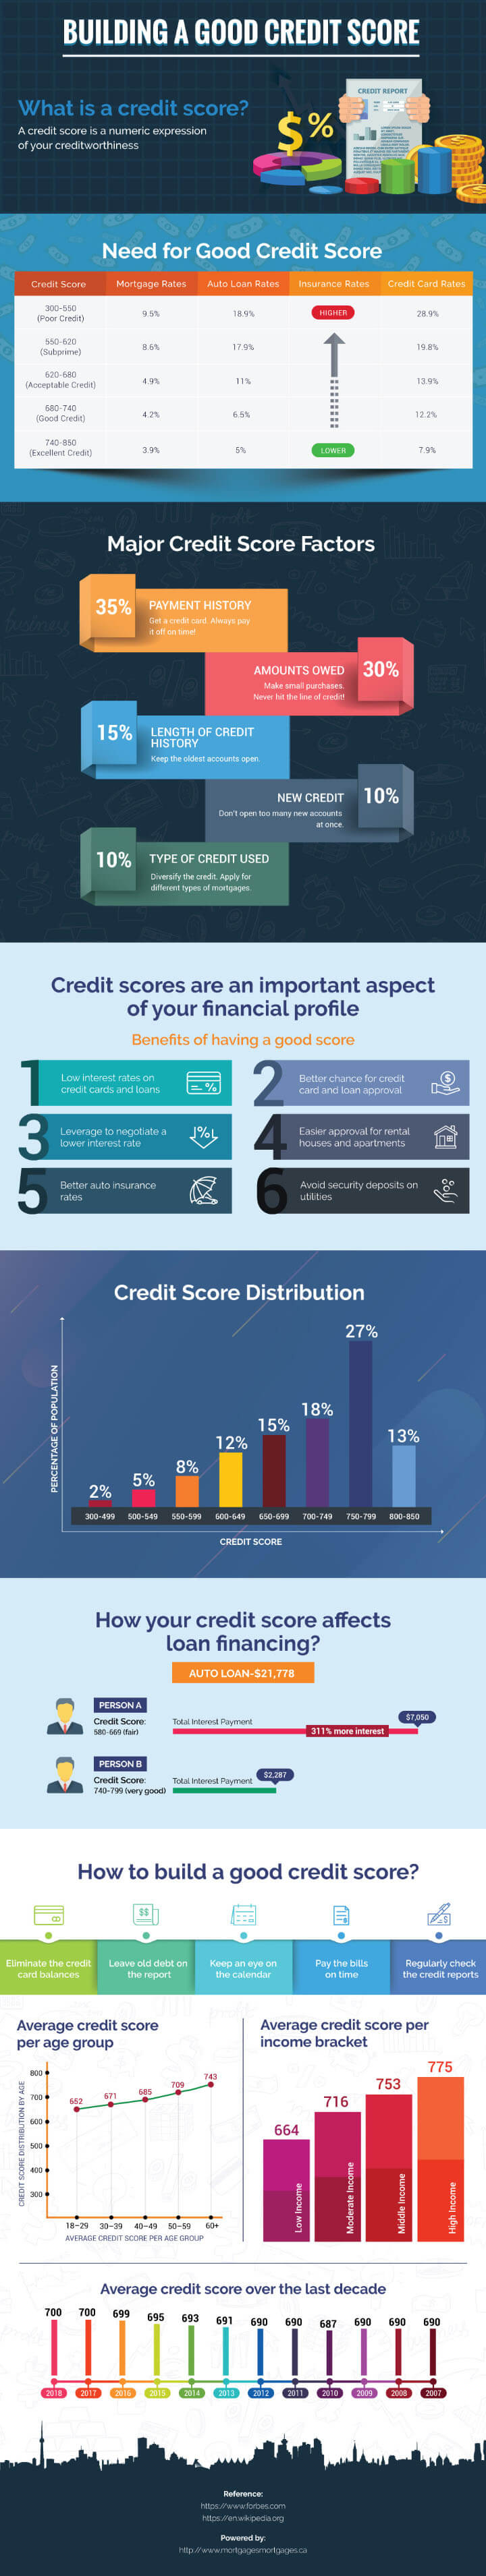 Building a Good Credit Score Infographic